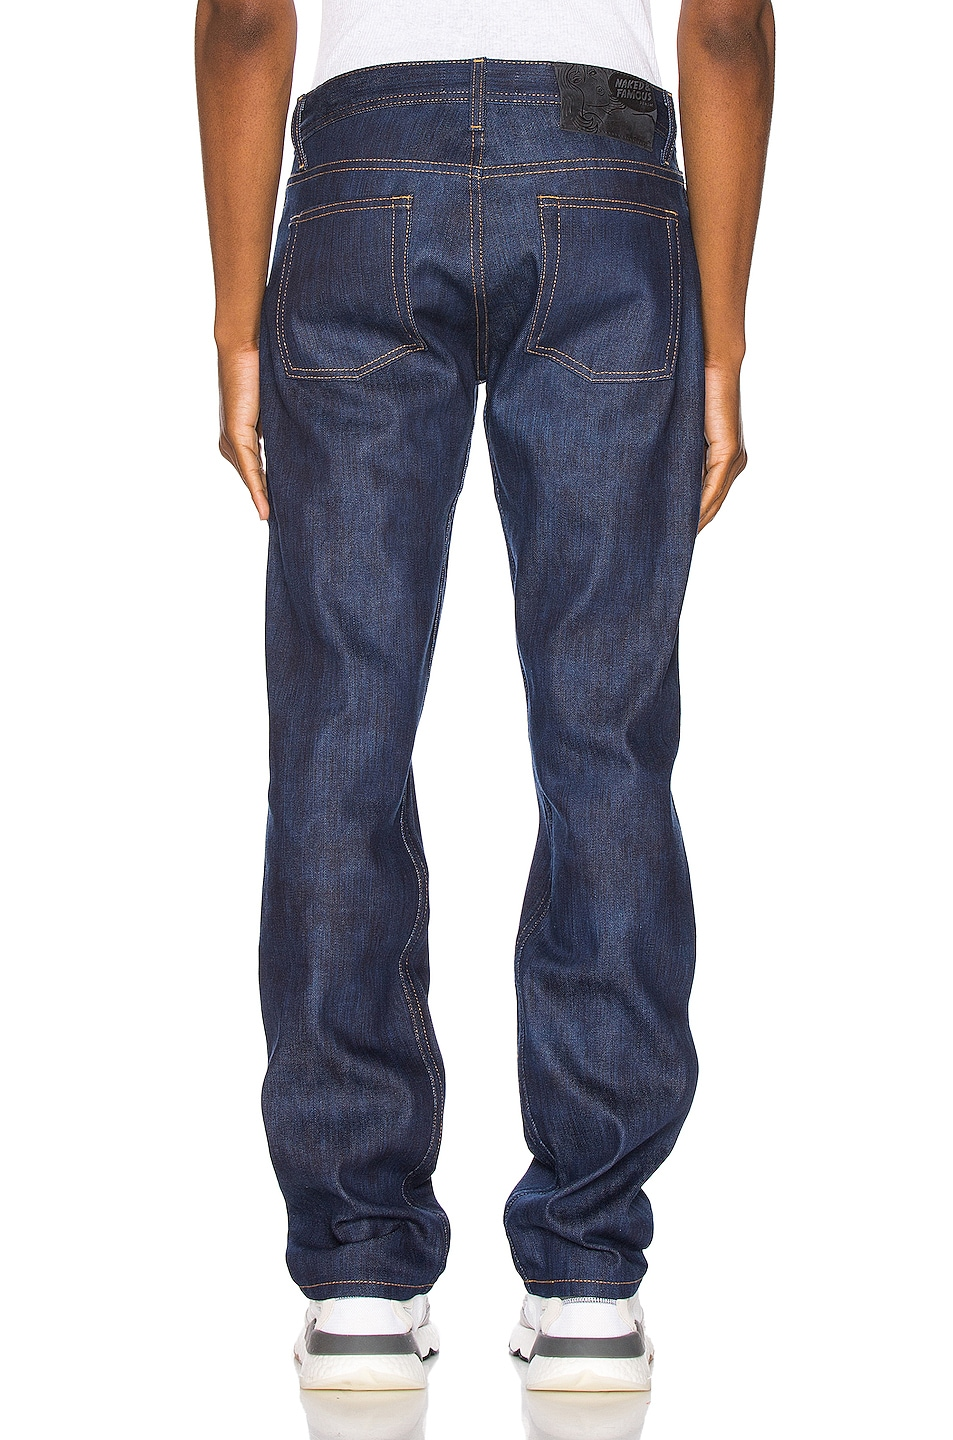 Image 3 of Naked & Famous Denim Weird Guy Jeans in Kasuri Stretch Selvedge